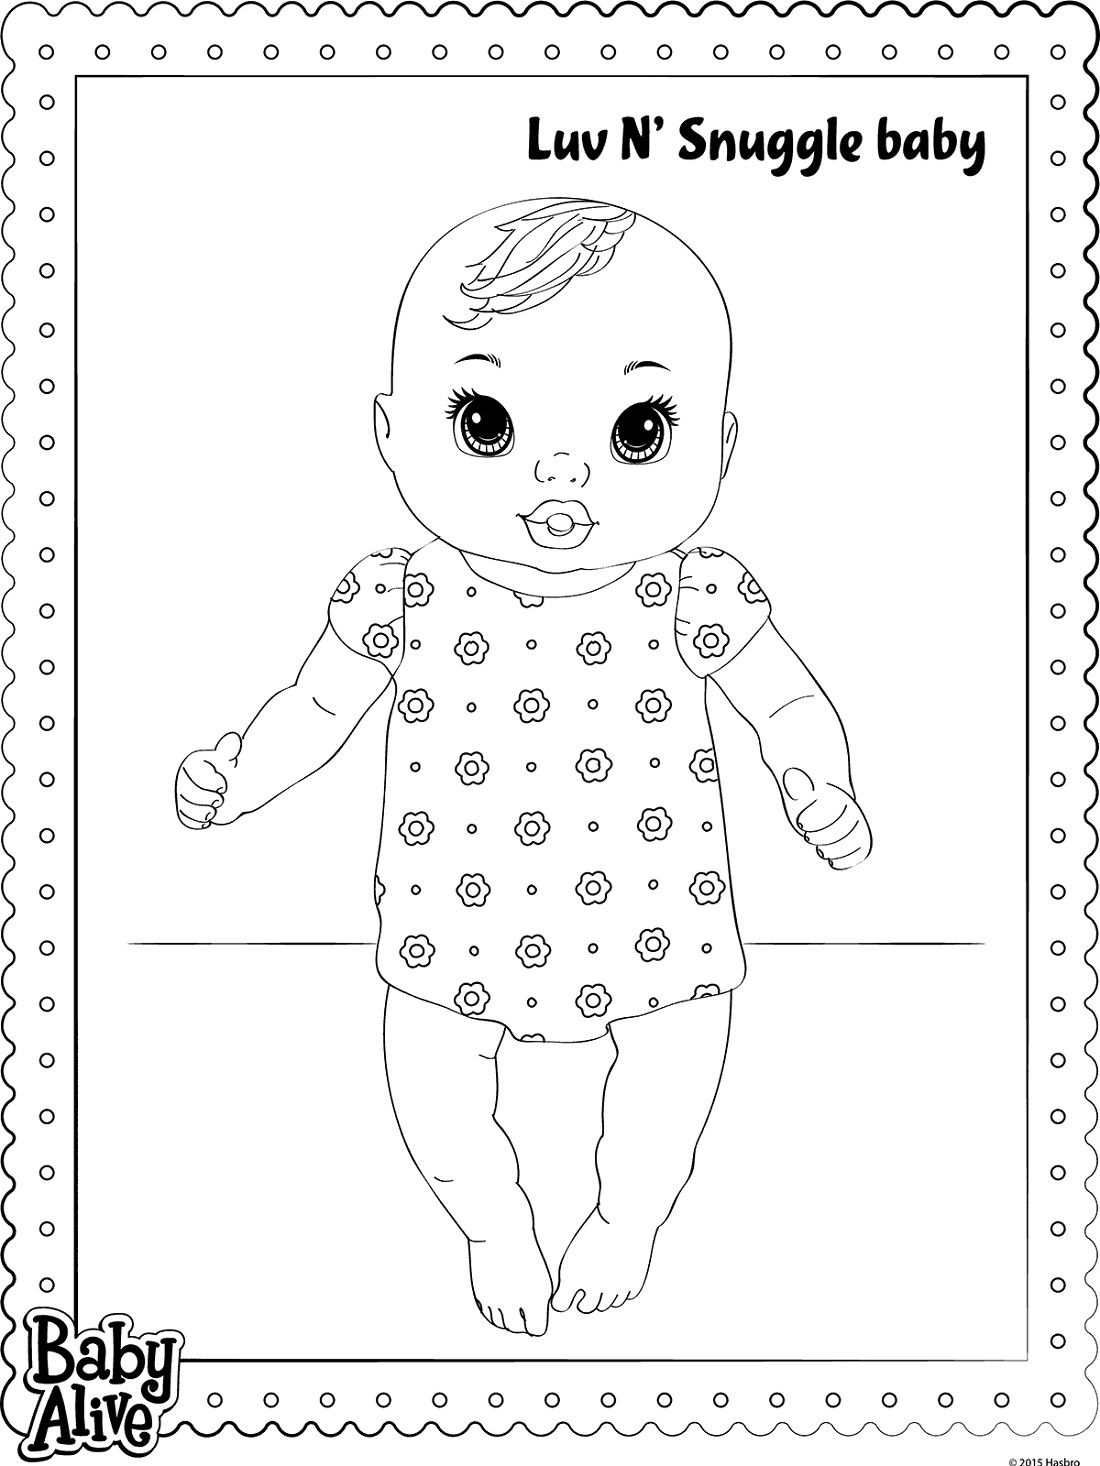 Luv N Snuggle Baby Alive Coloring Pages K5 Worksheets Sailor Moon Coloring Pages Coloring Pages Baby Alive